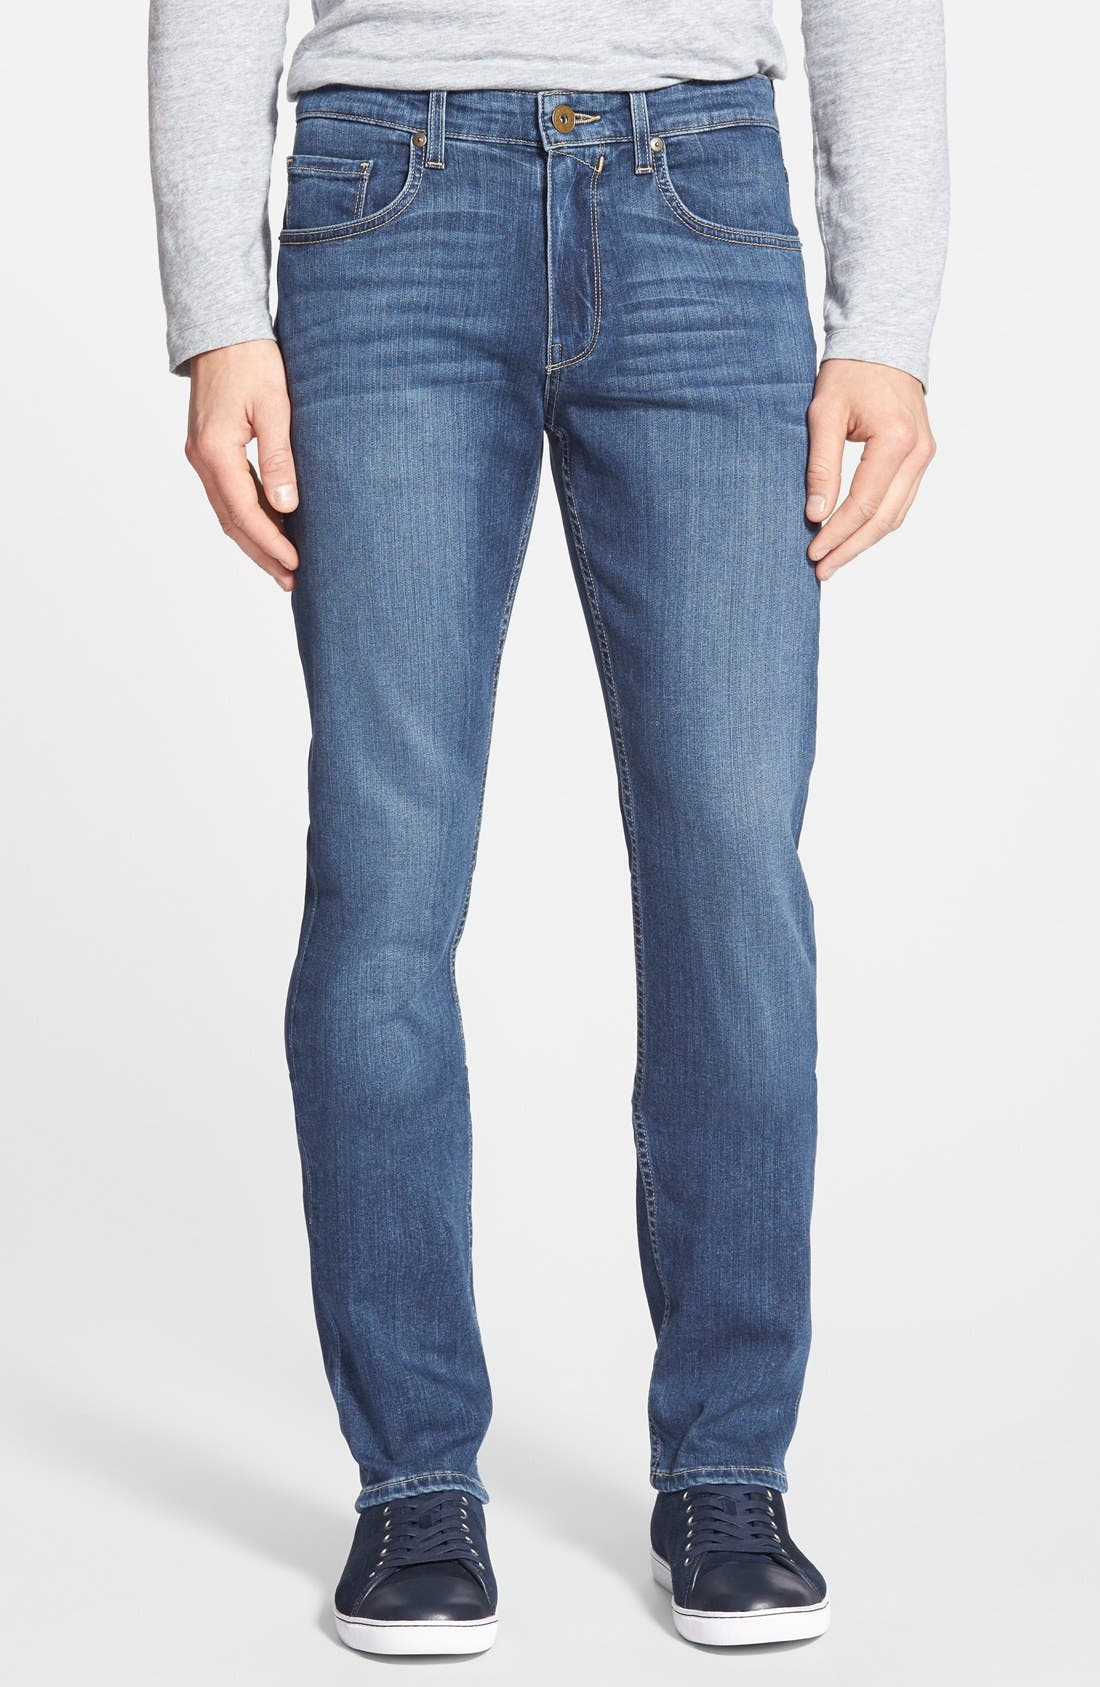 Transcend - Federal Slim Straight Leg Jeans,                         Main,                         color, Birch